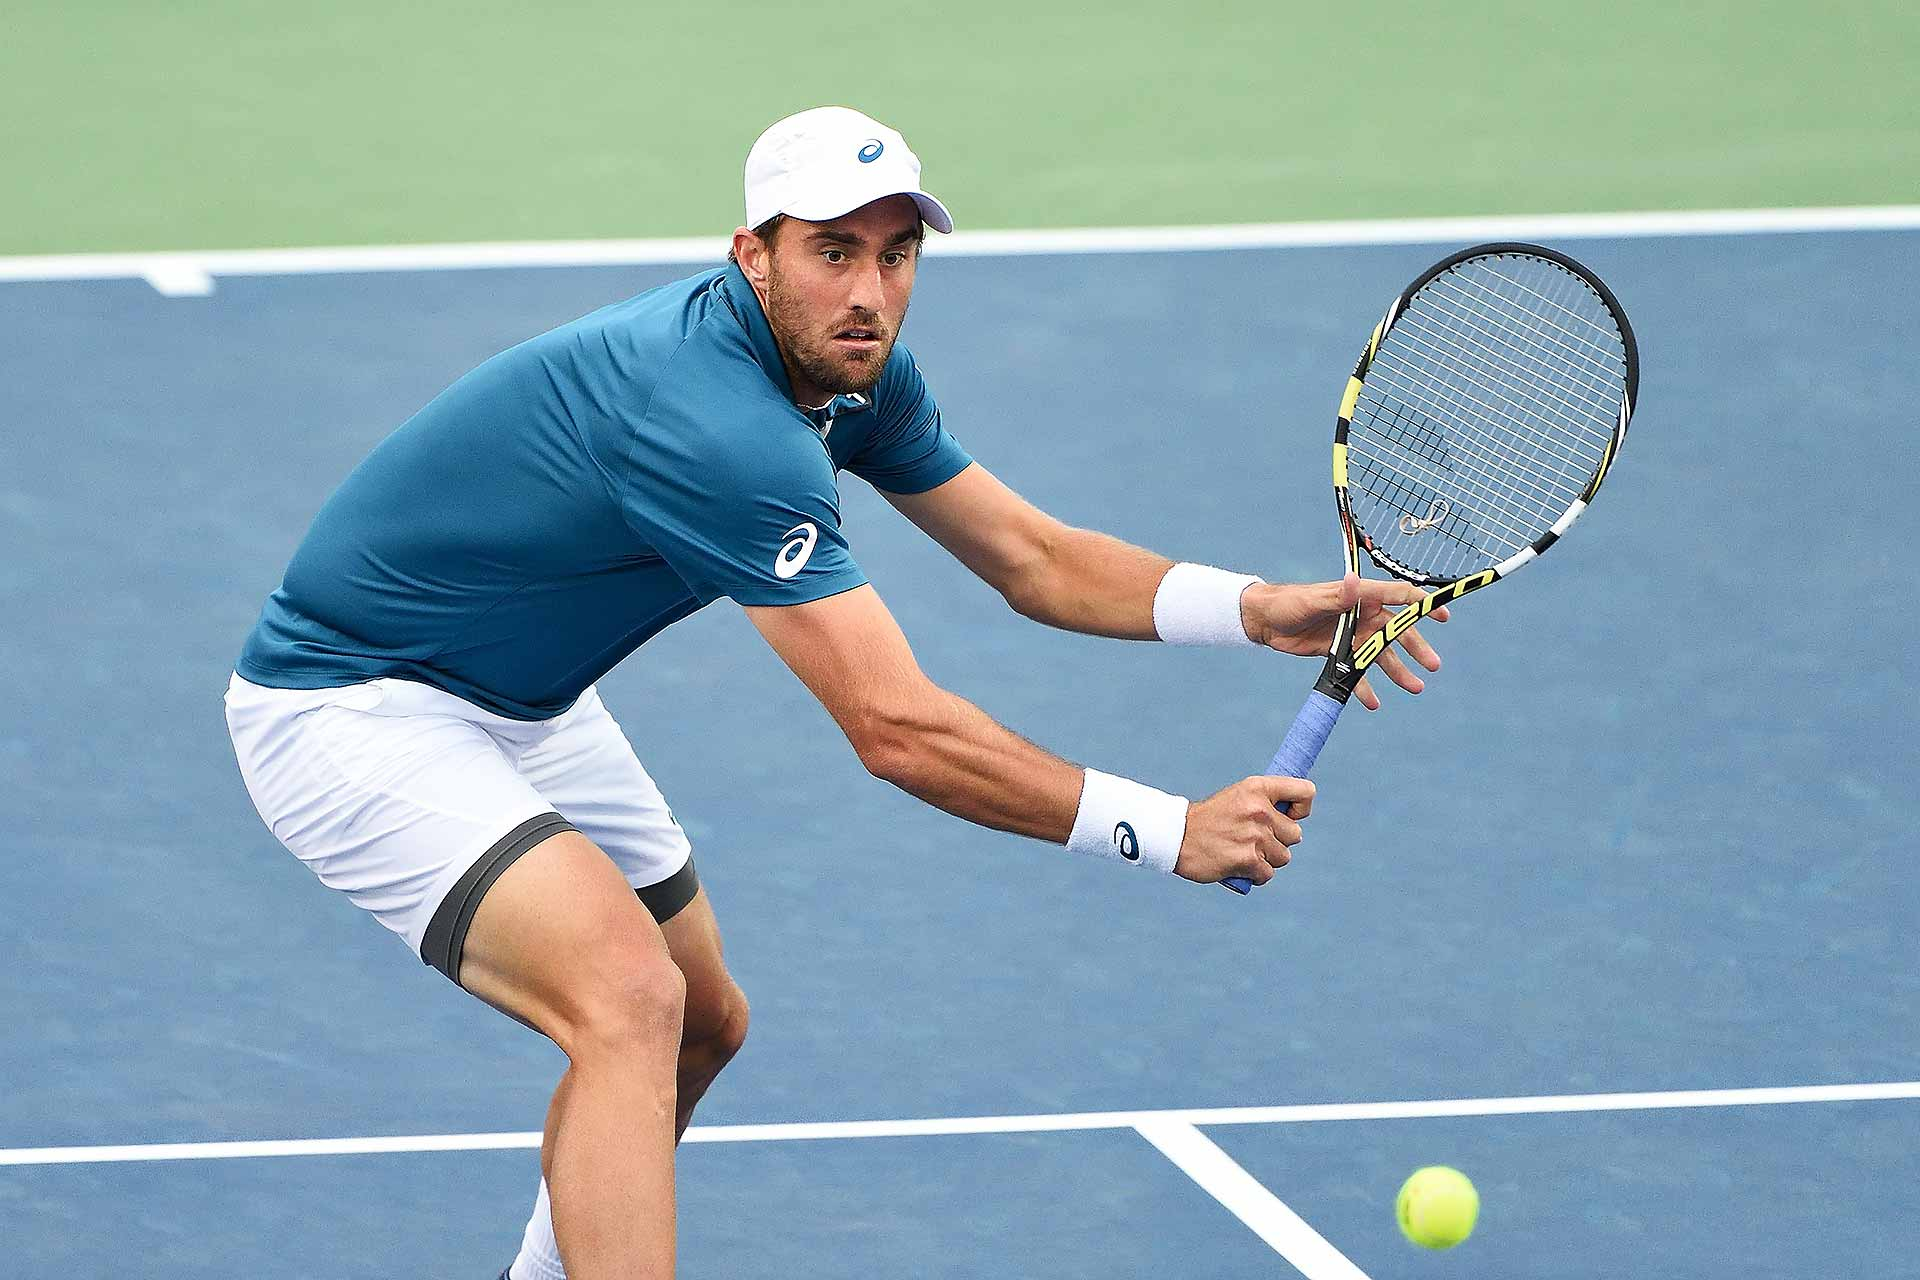 Ponturi Tenis Fognini – Johnson – Toronto (CAN)